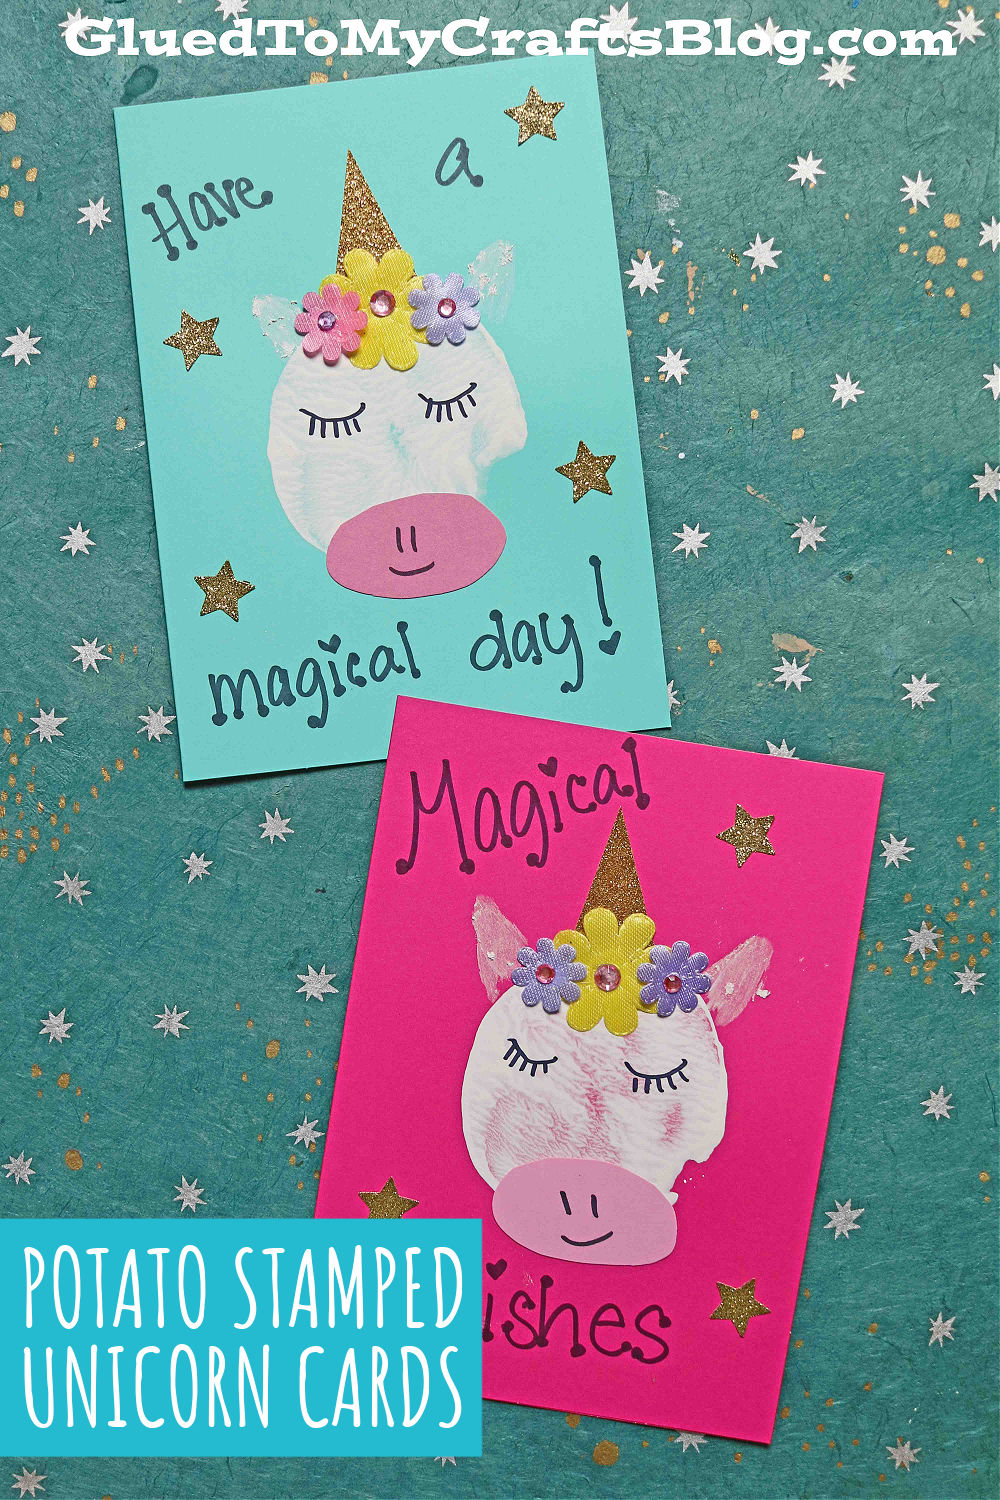 Potato Stamped Unicorn Cards For Kids To Recreate Today!